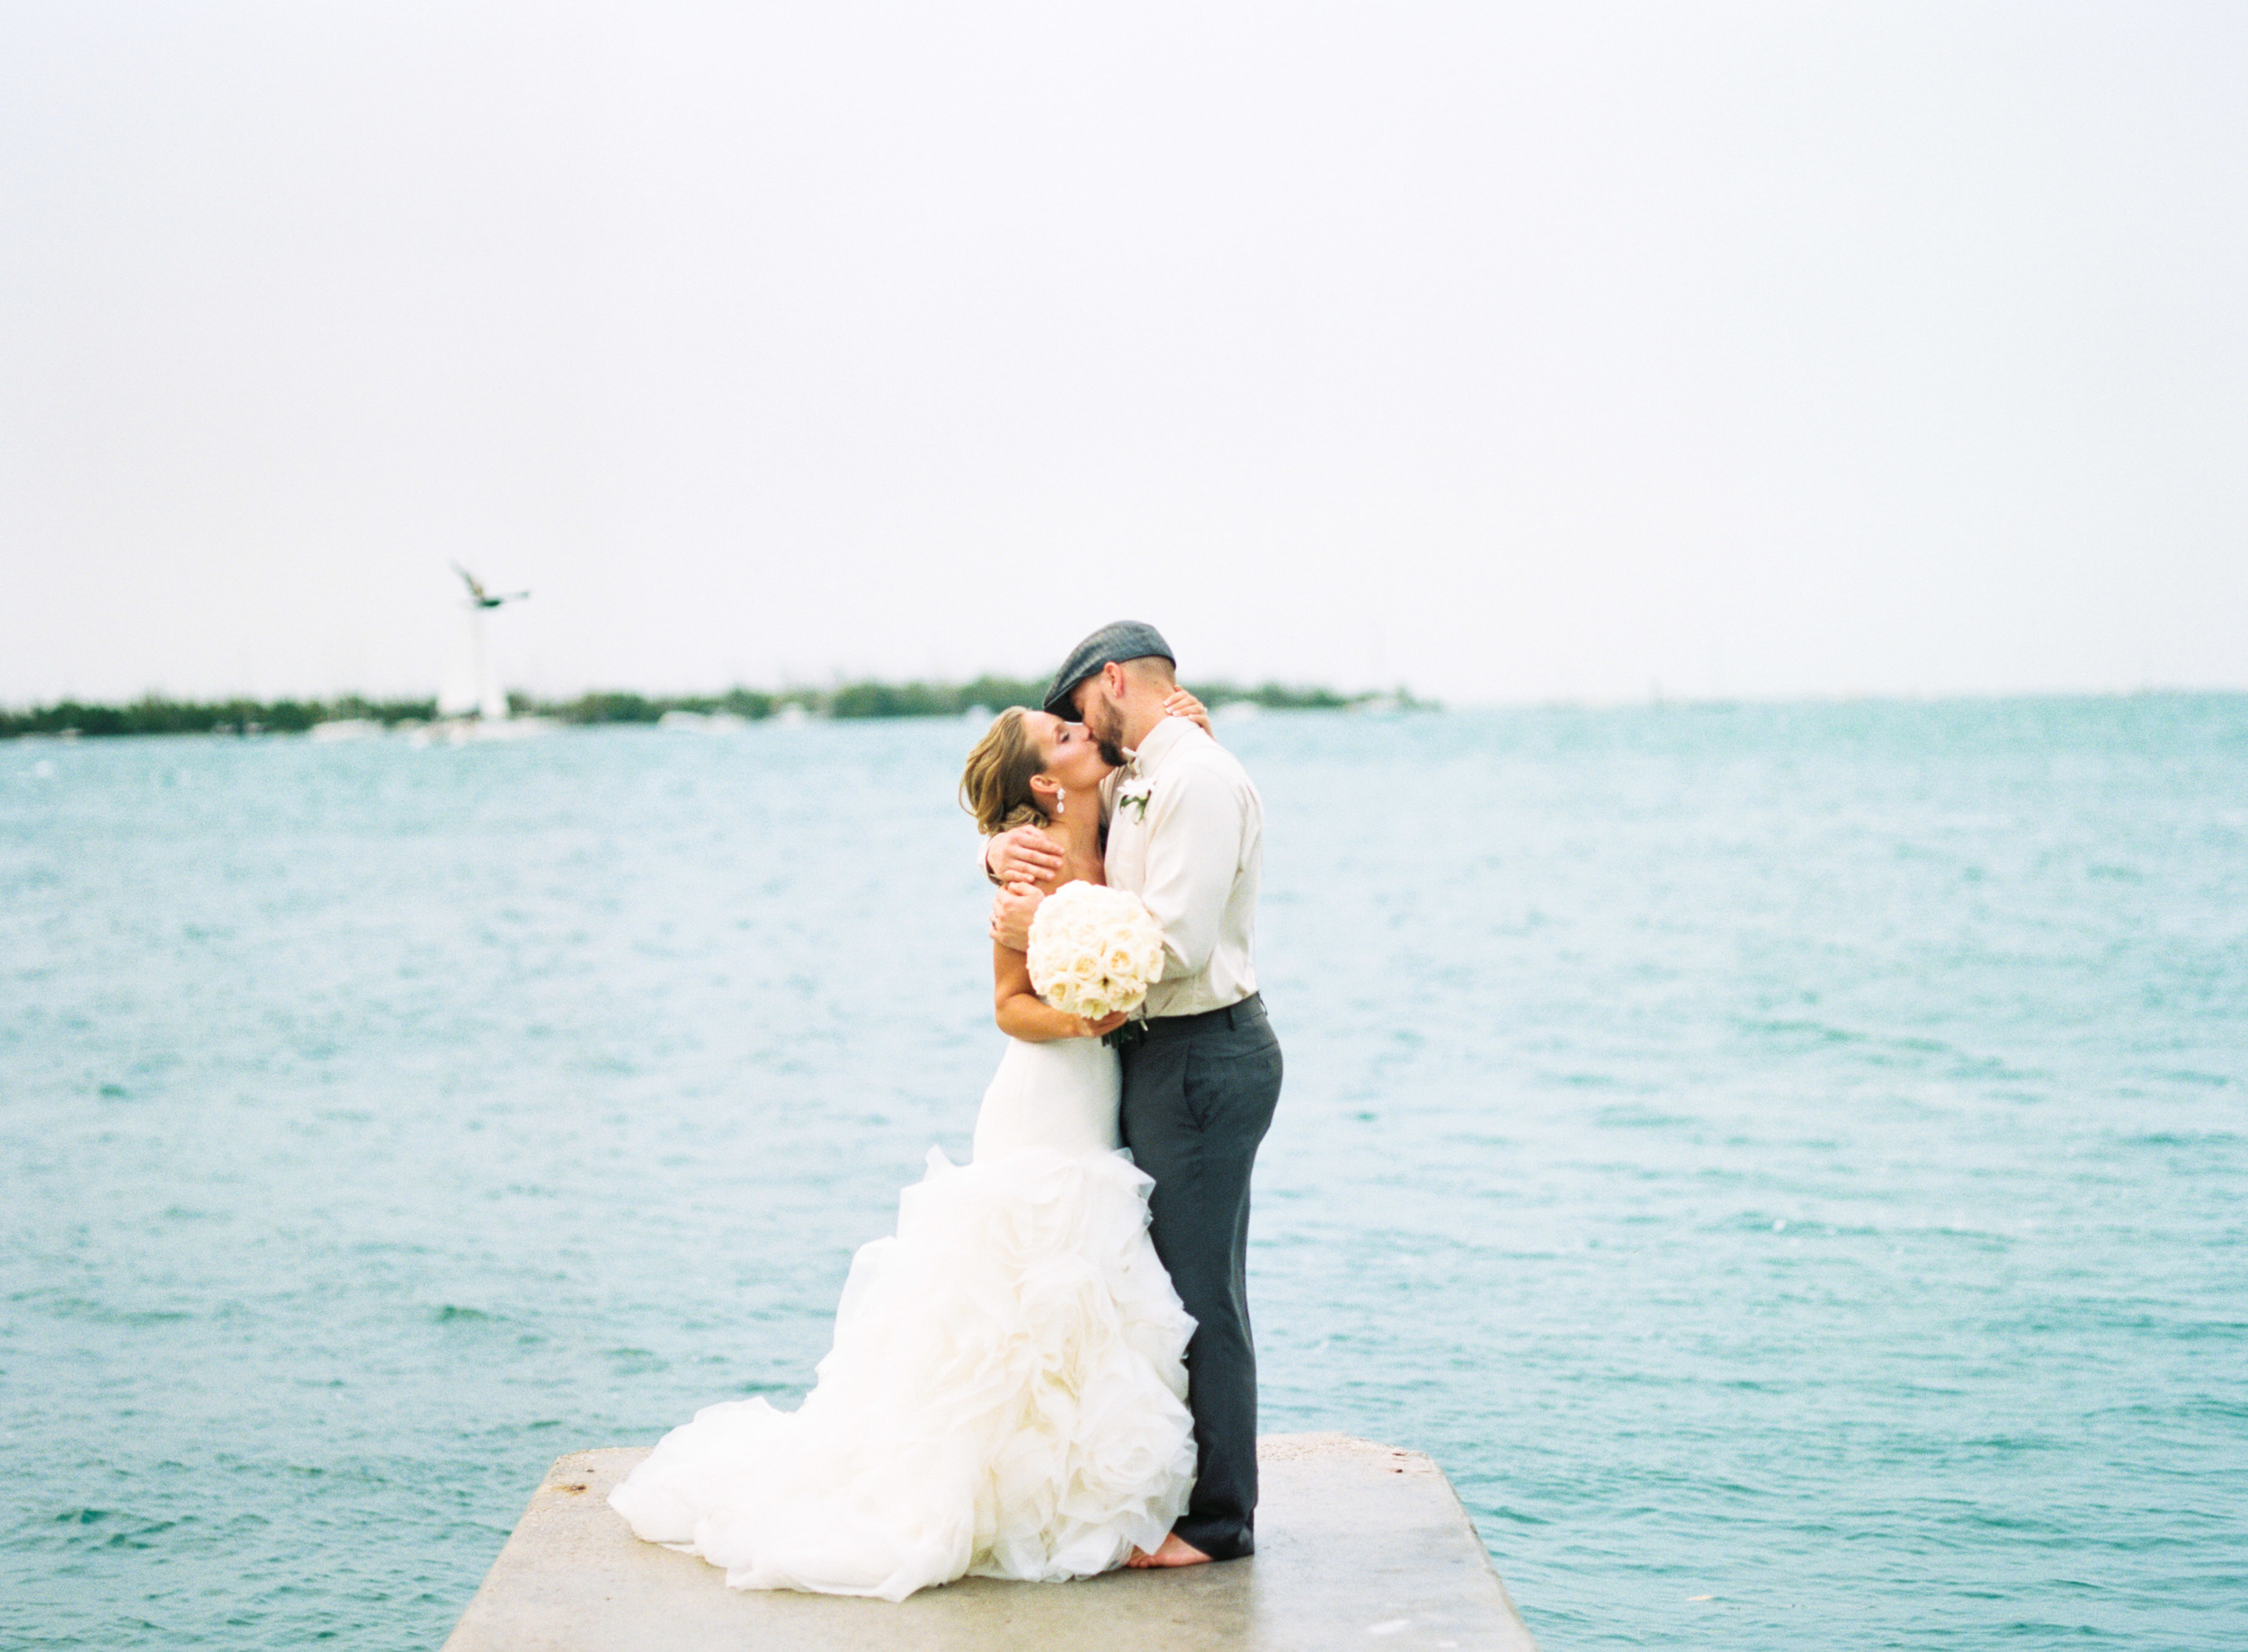 Key West Florida Wedding Film Photographer Photovision Chicago Wedding Photographer 28.jpg